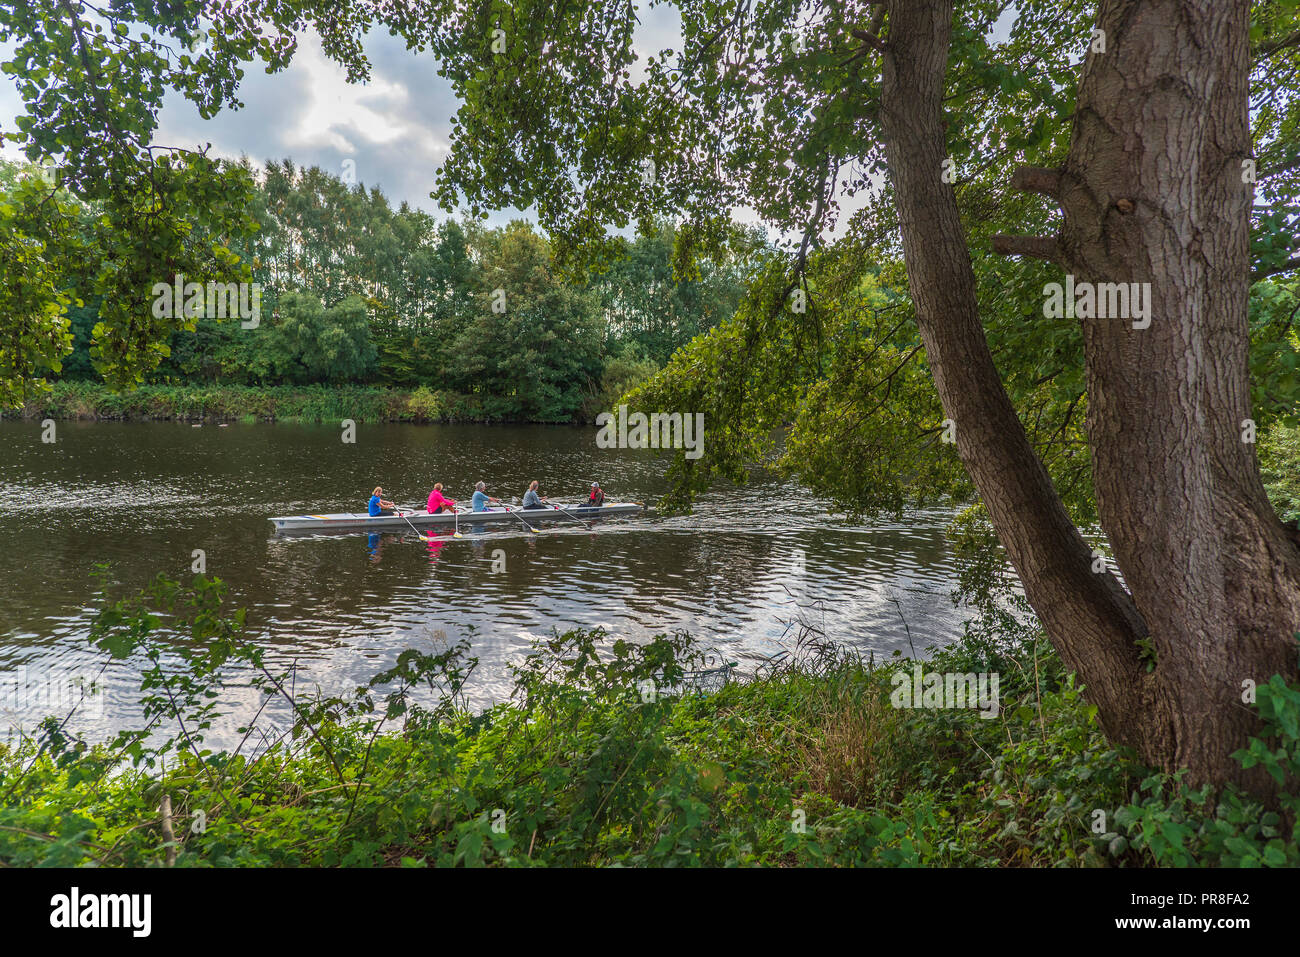 River Mersey at Latchford, Warrington. Rowers - Stock Image